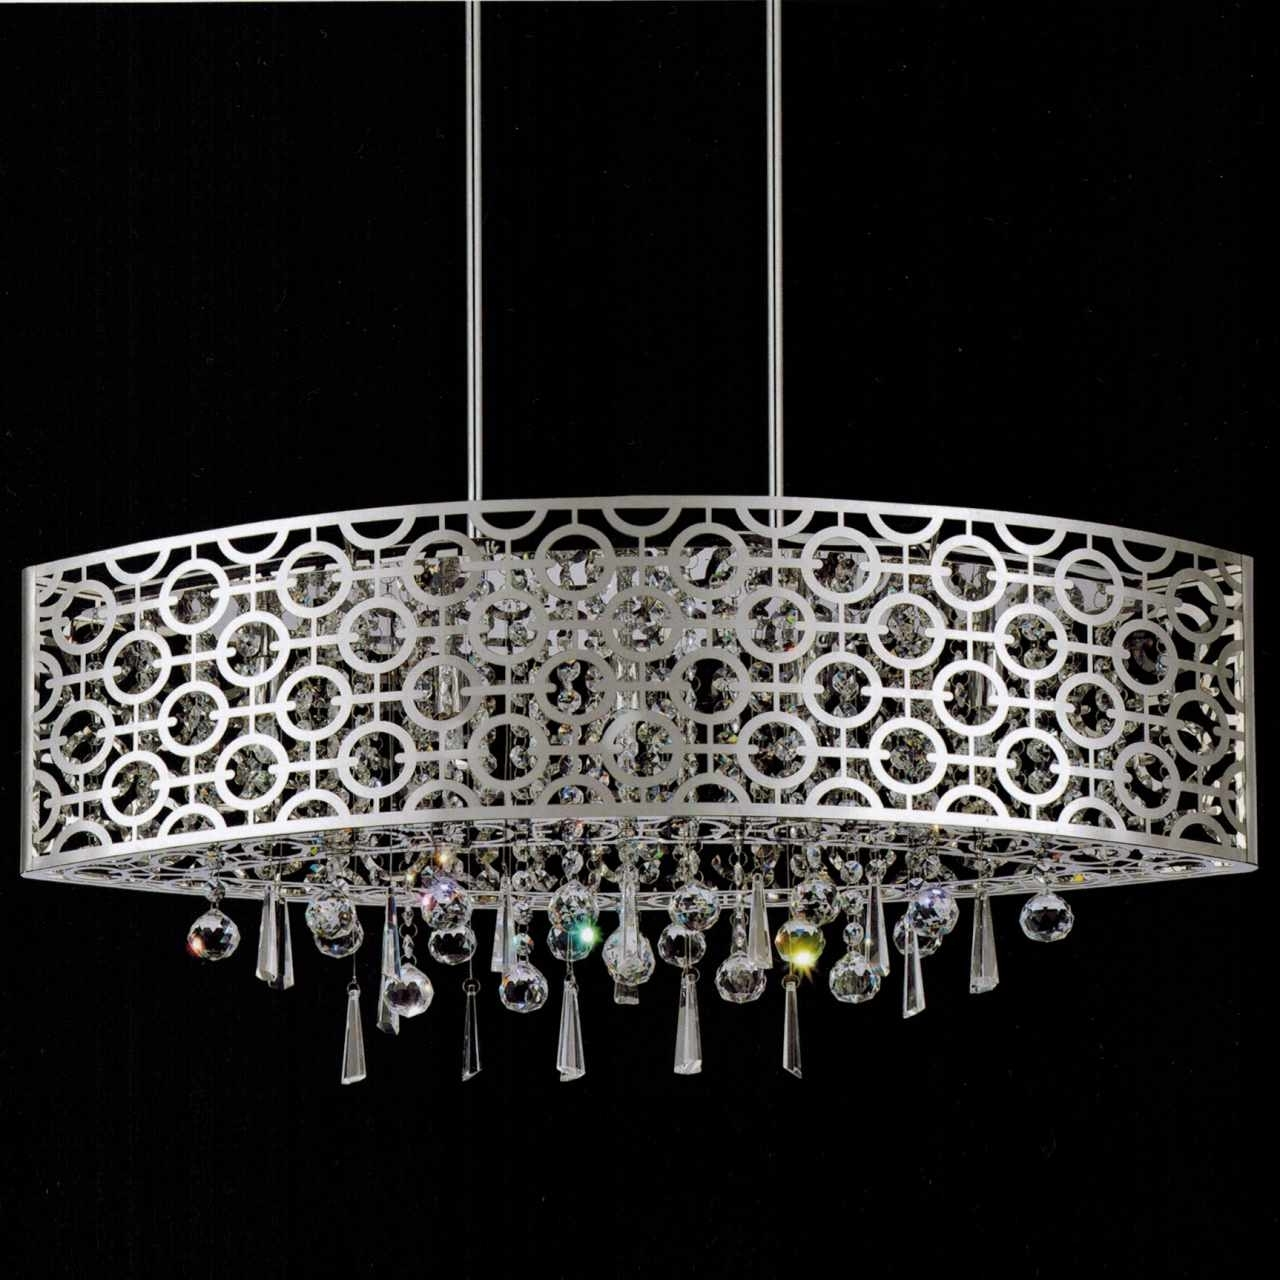 Modern Pendant Chandelier Lighting Throughout Trendy Brizzo Lighting Stores (View 10 of 15)